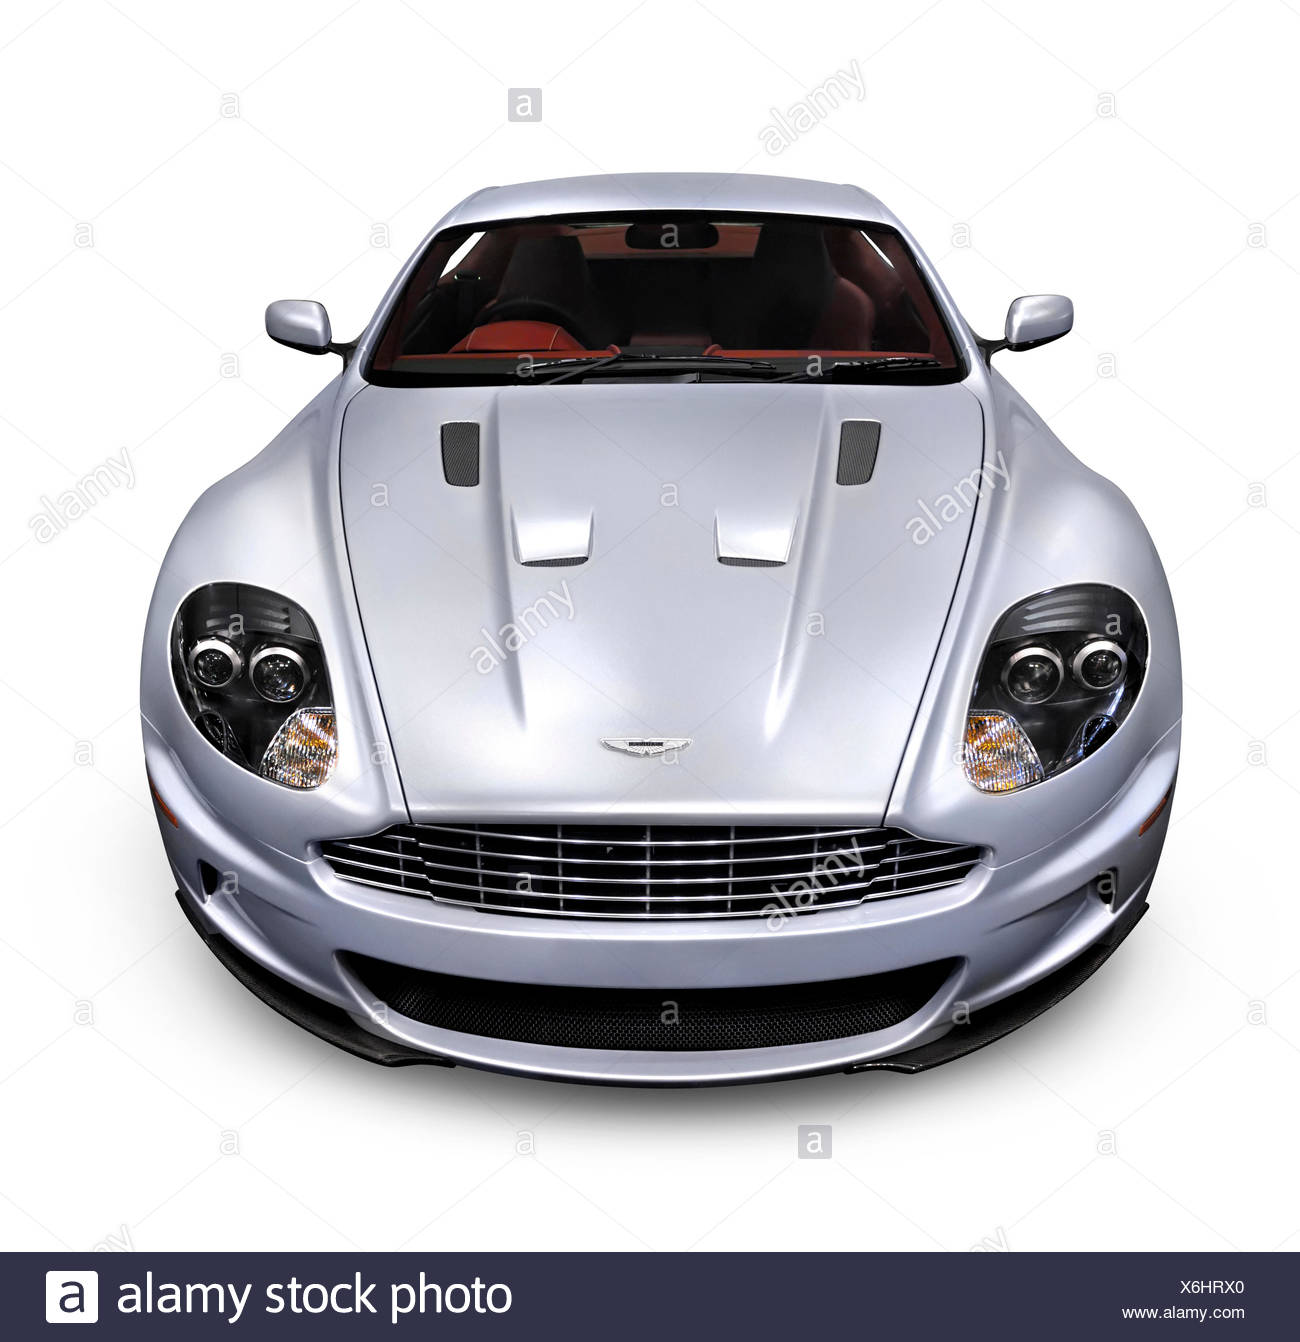 2009 Aston Martin DBS luxury car, front view - Stock Image